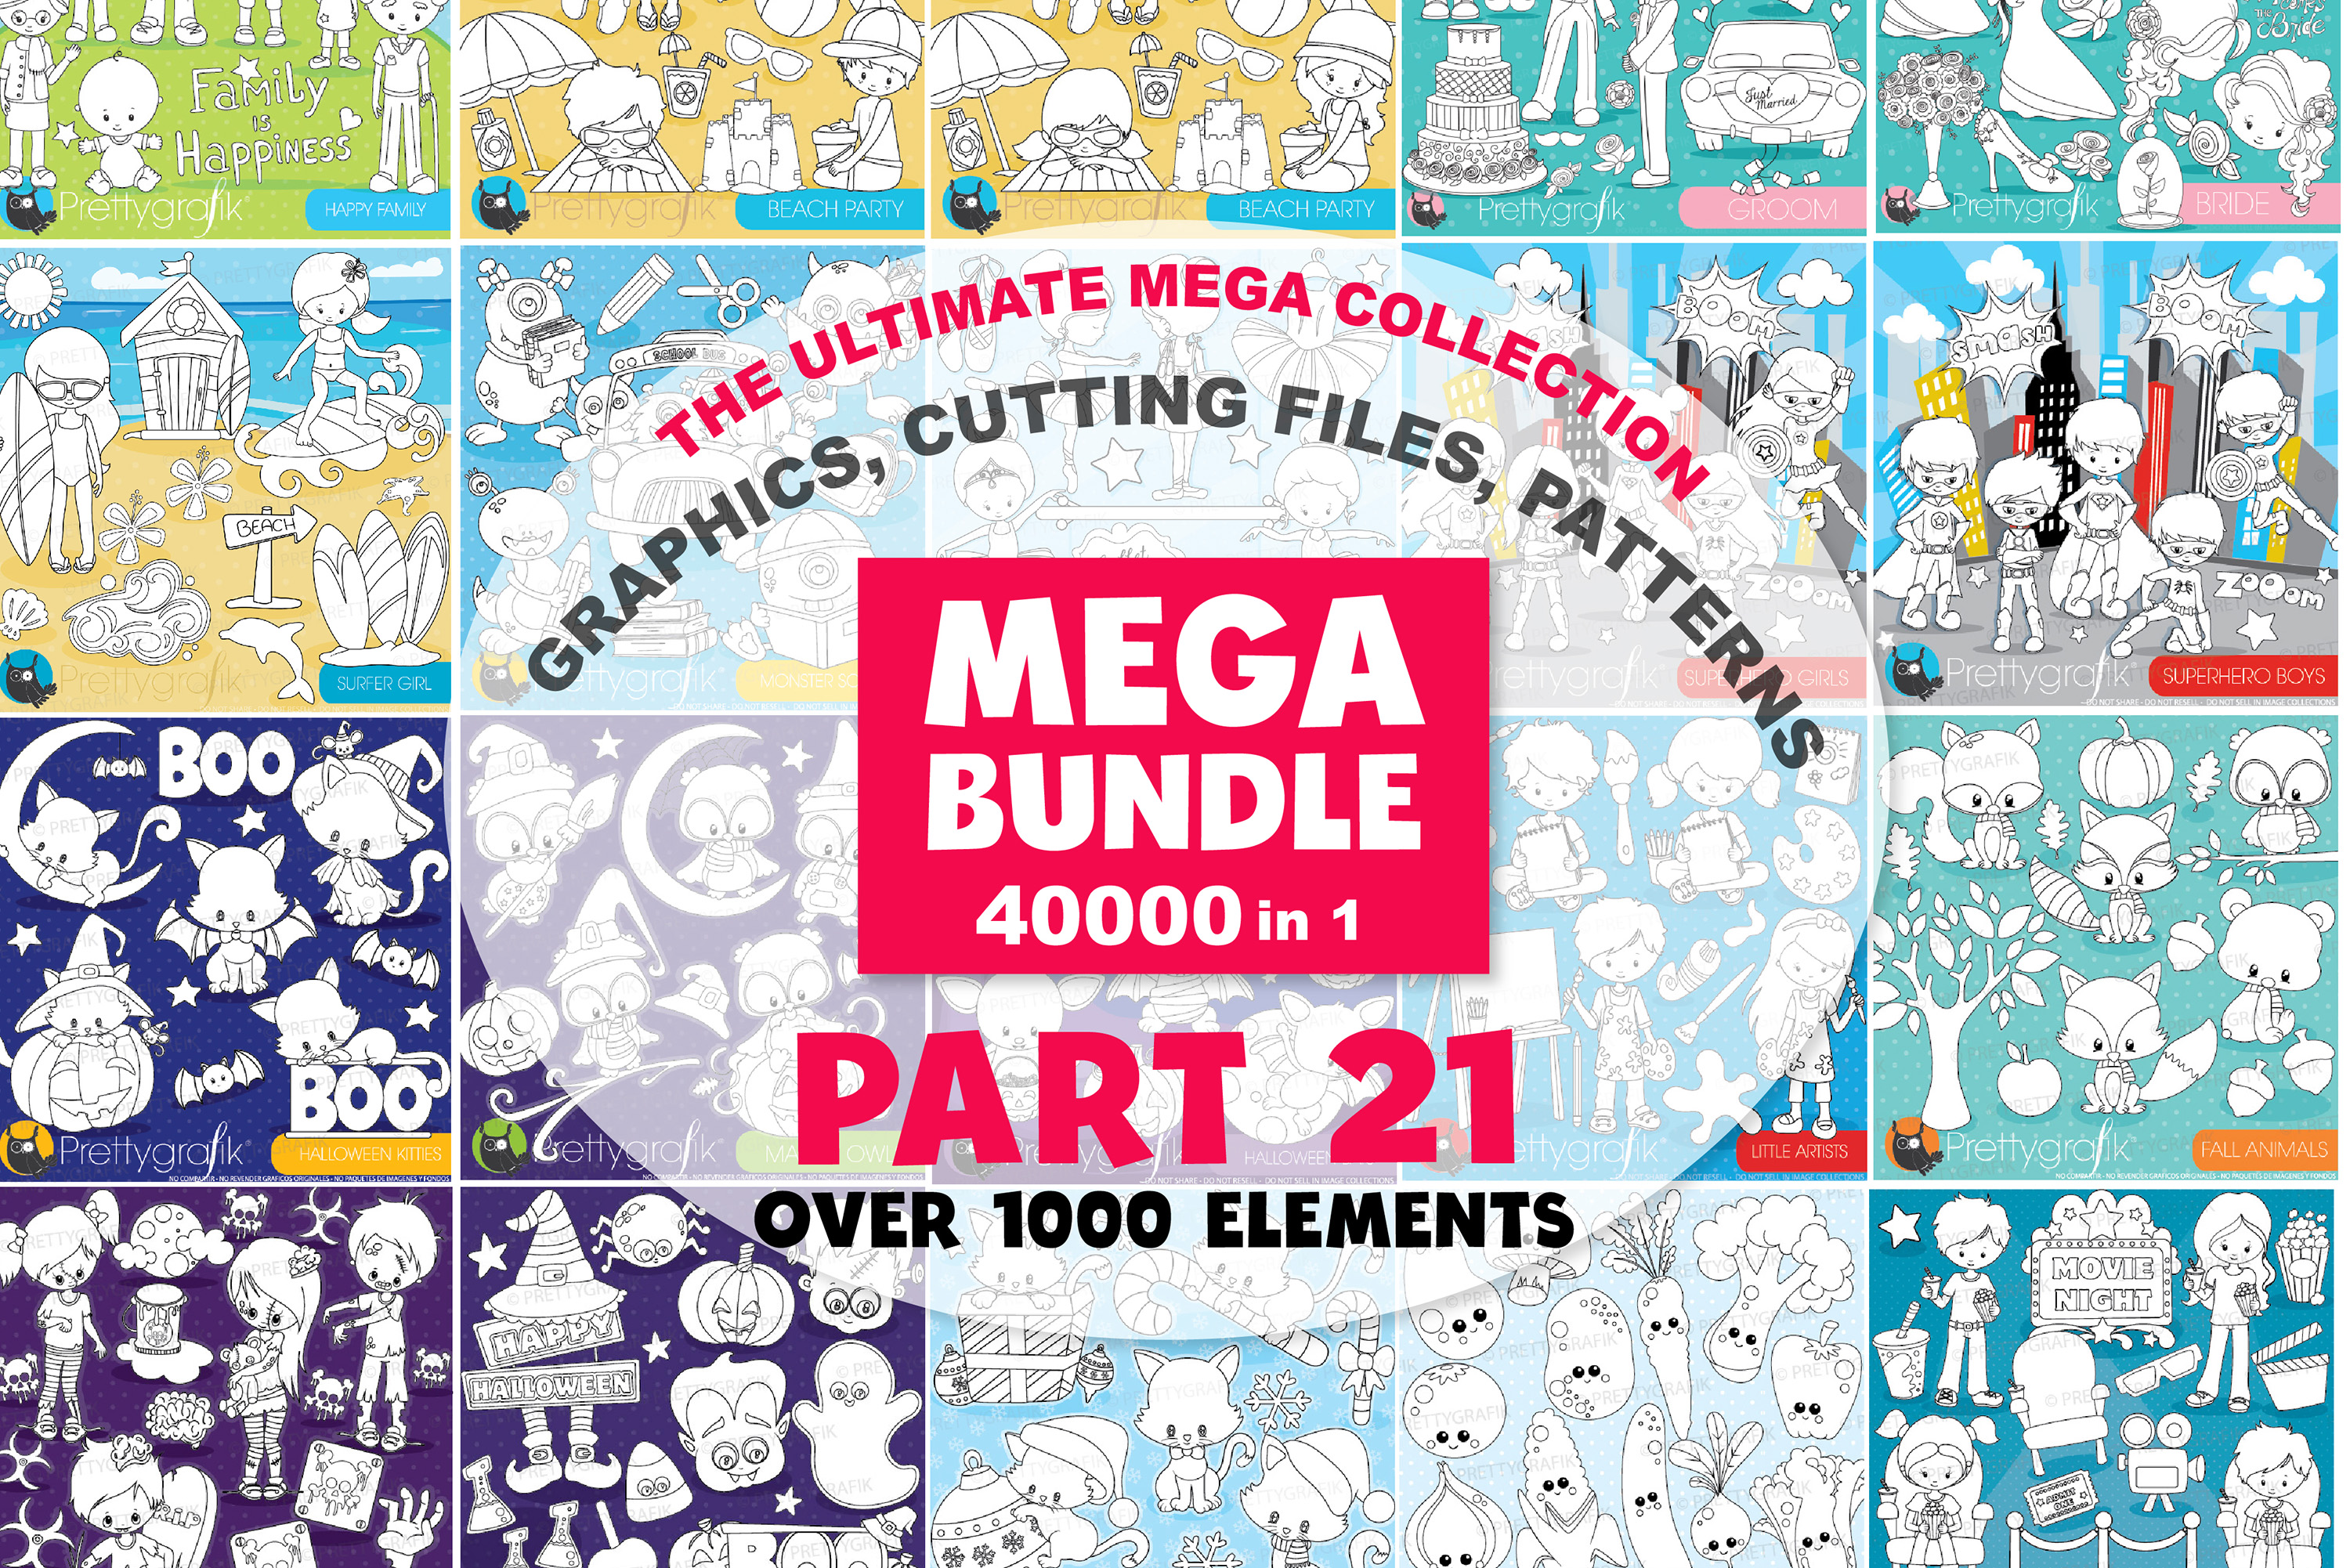 MEGA BUNDLE PART21 - 40000 in 1 Full Collection example image 1